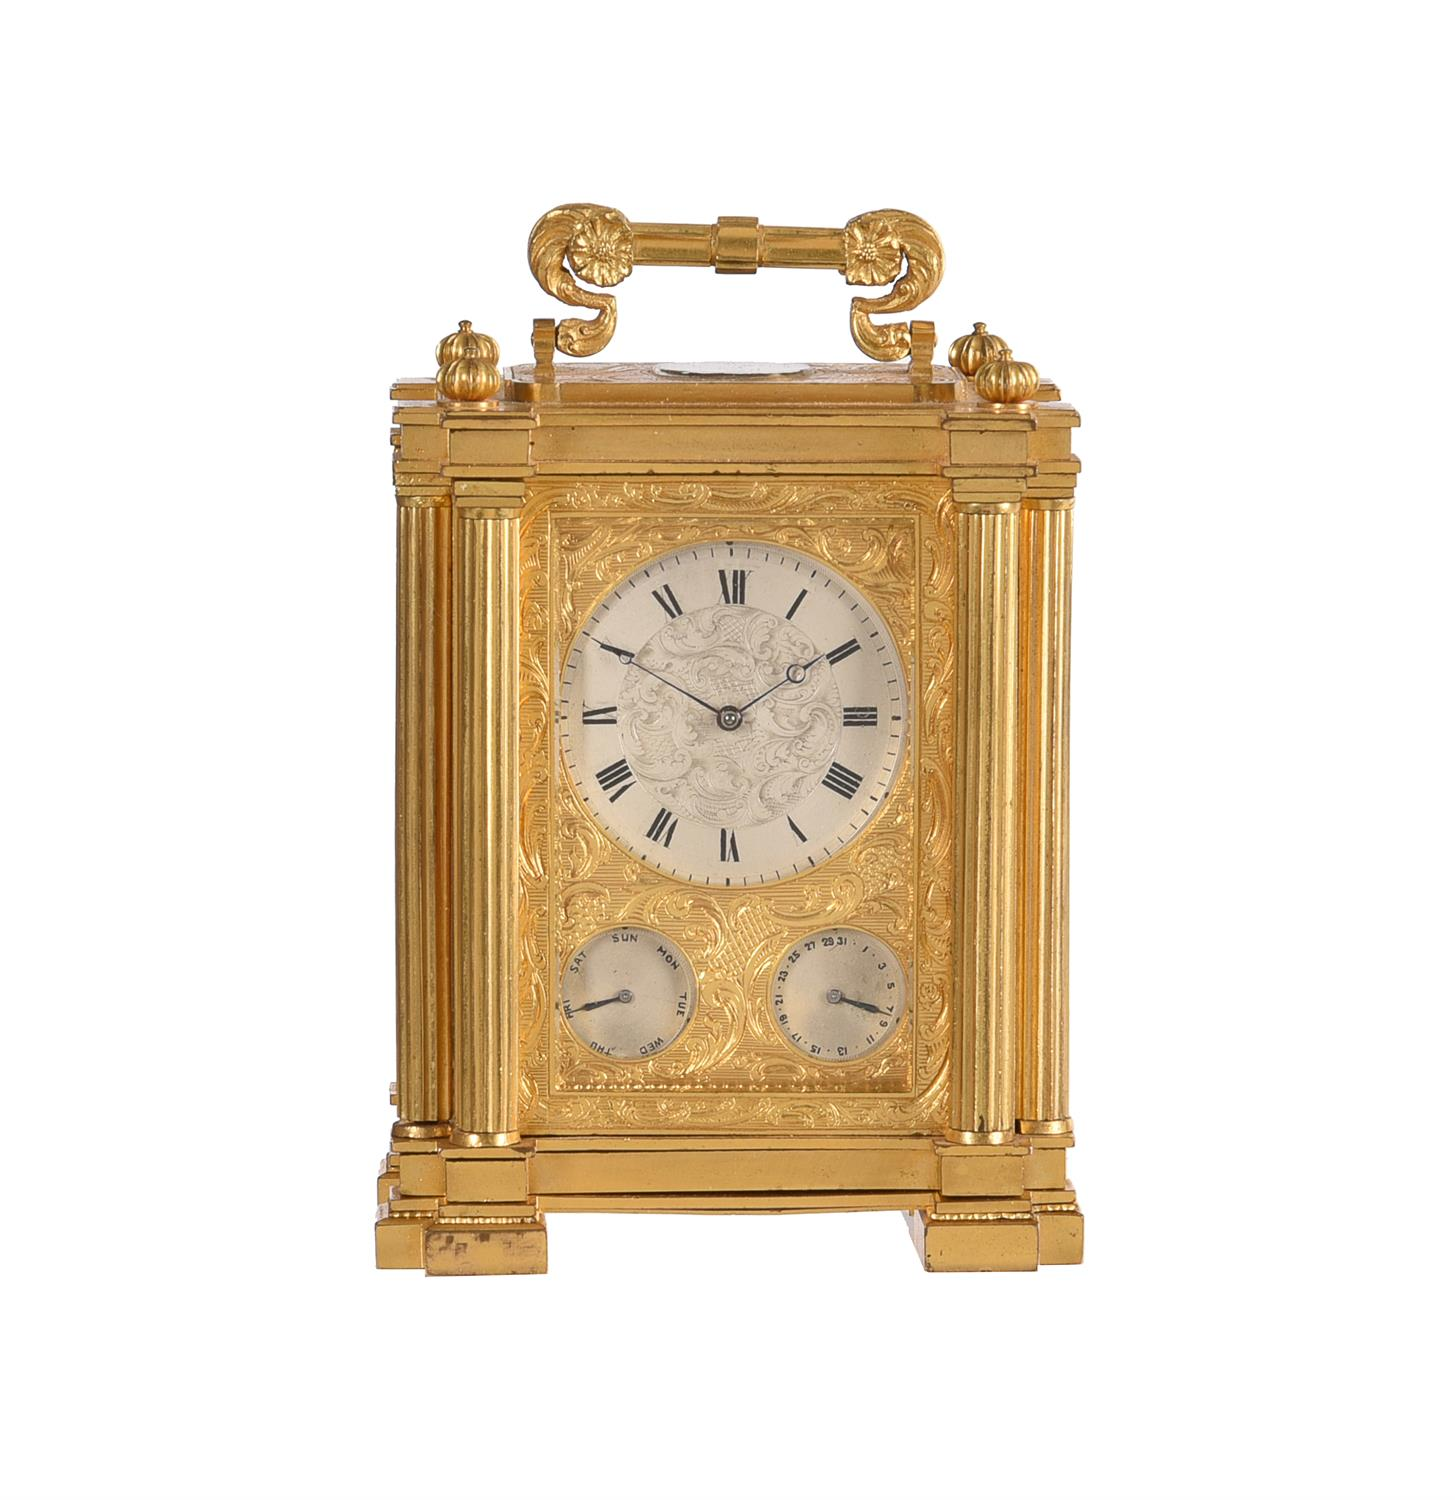 A fine small early Victorian engraved gilt brass small calendar carriage timepiece with twin thermom - Image 2 of 14